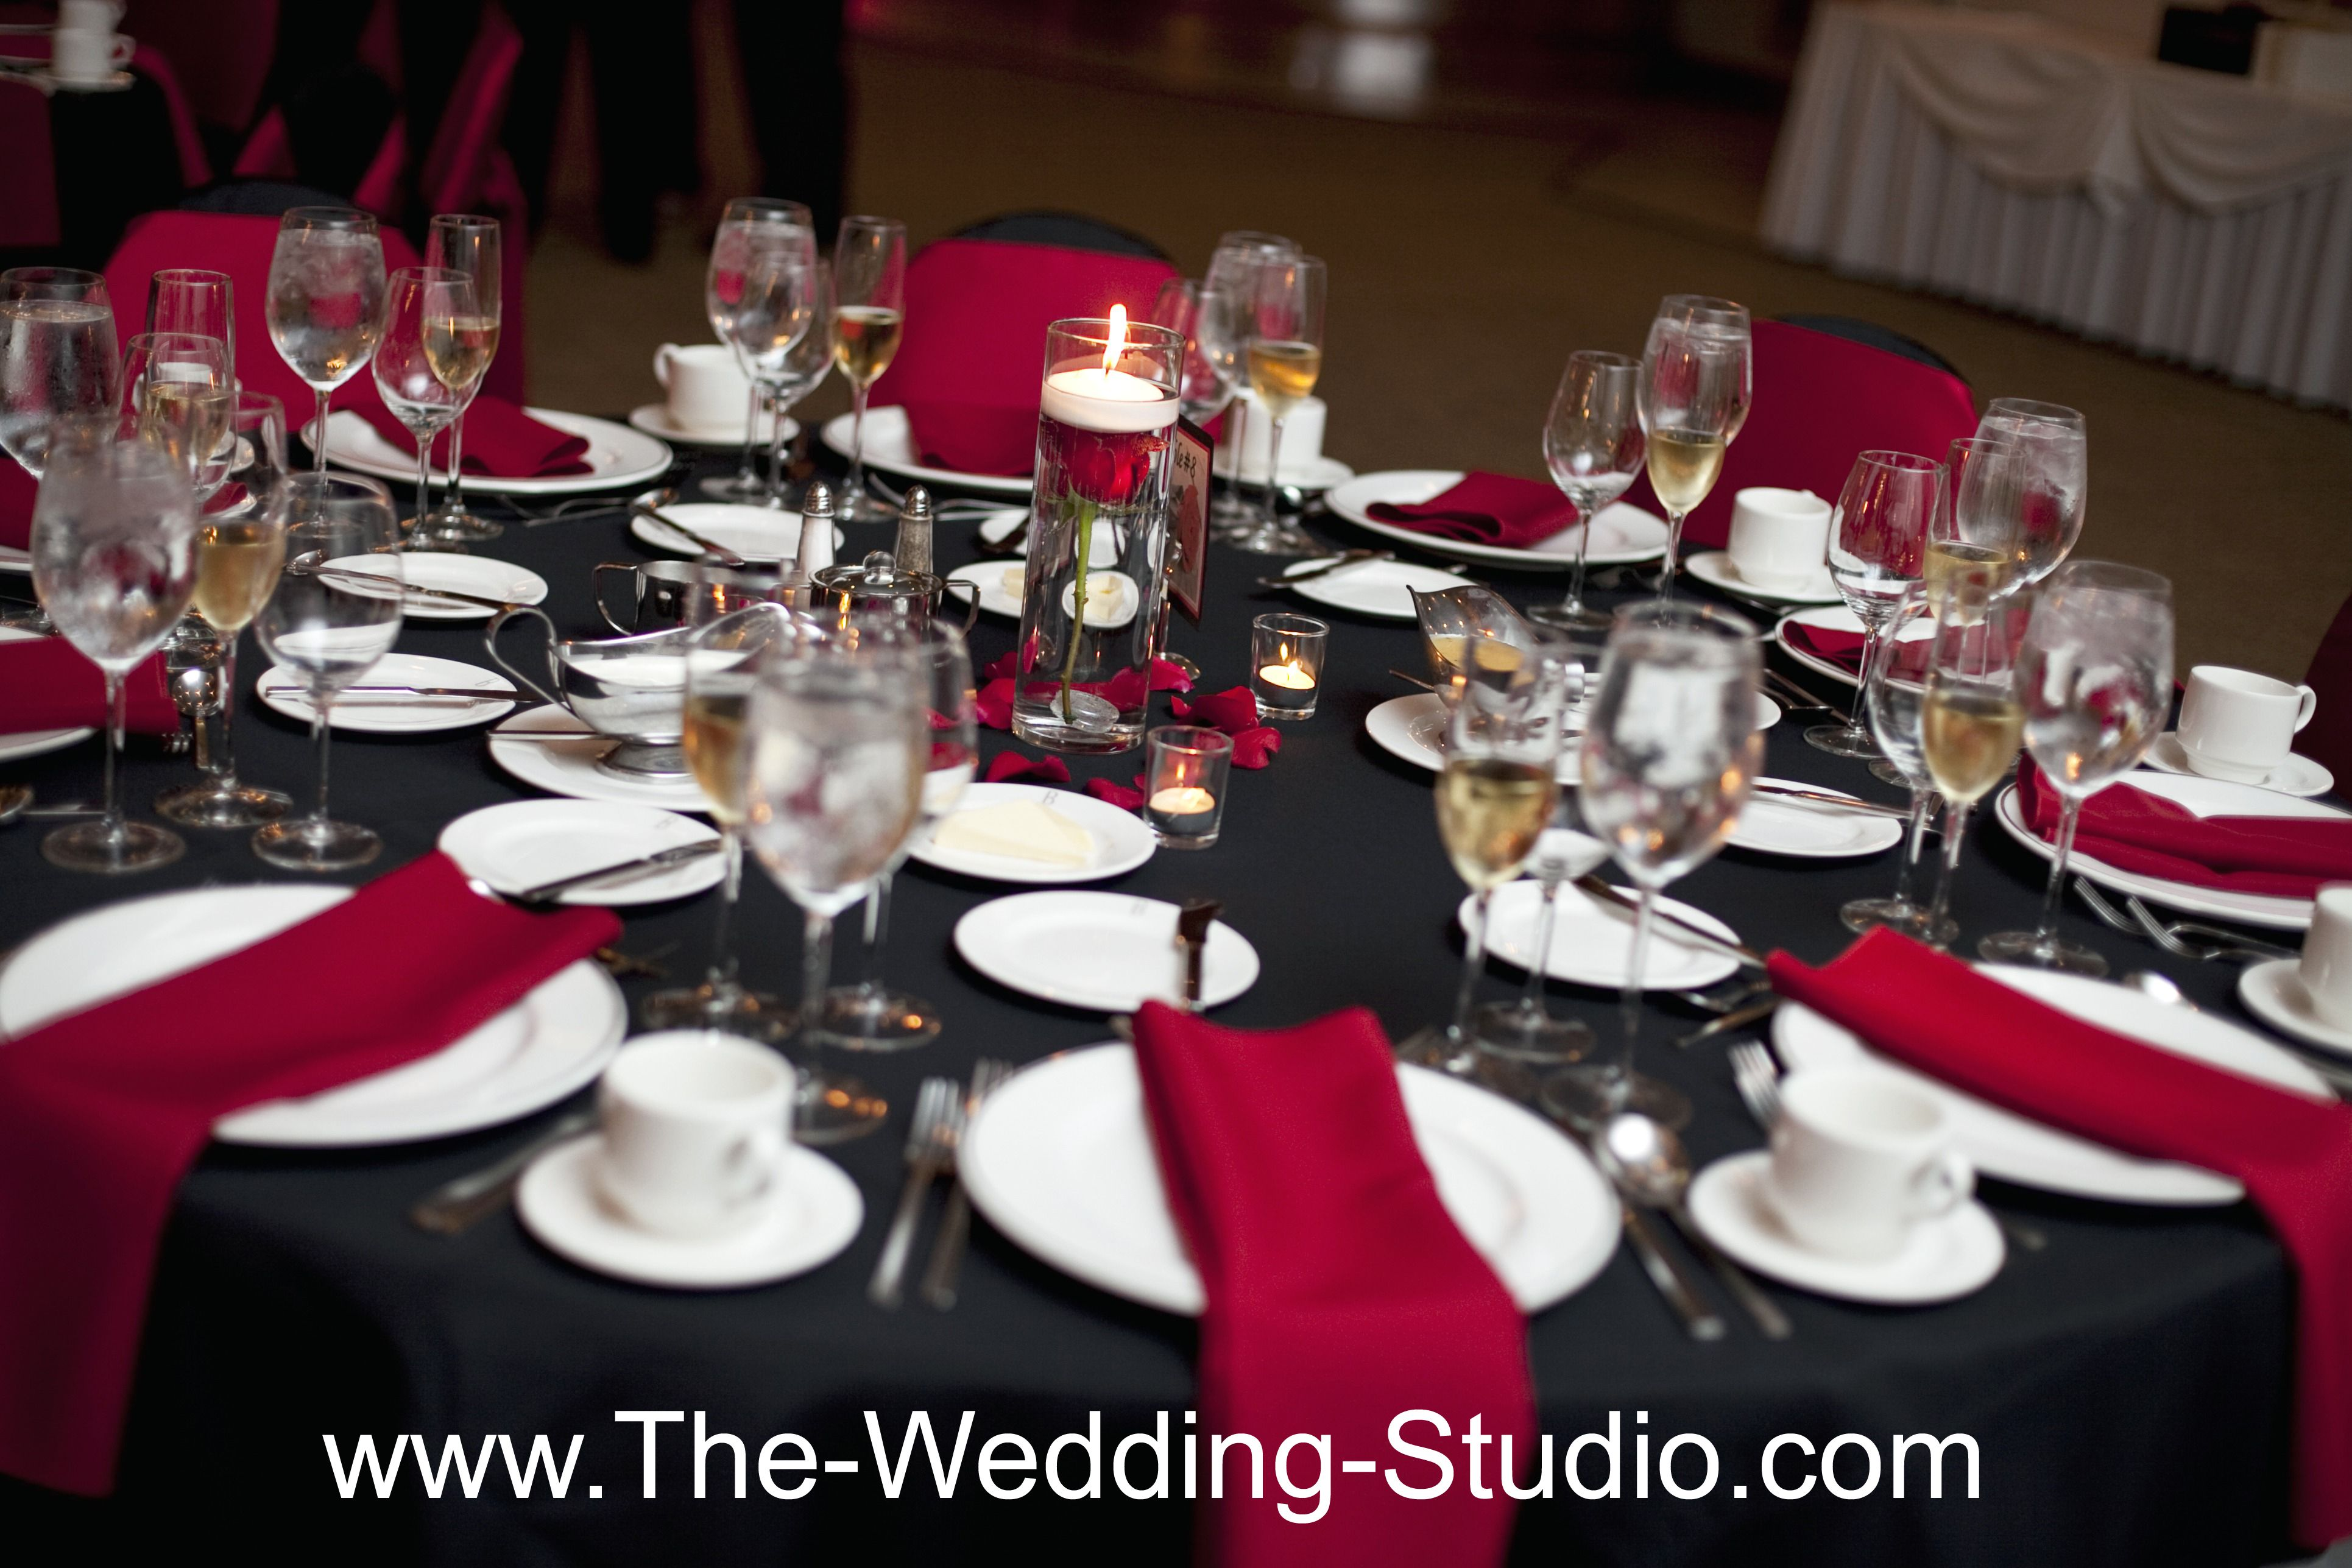 Black Table Cloth Red Napkins A Dash Of Red Rose Petals Small